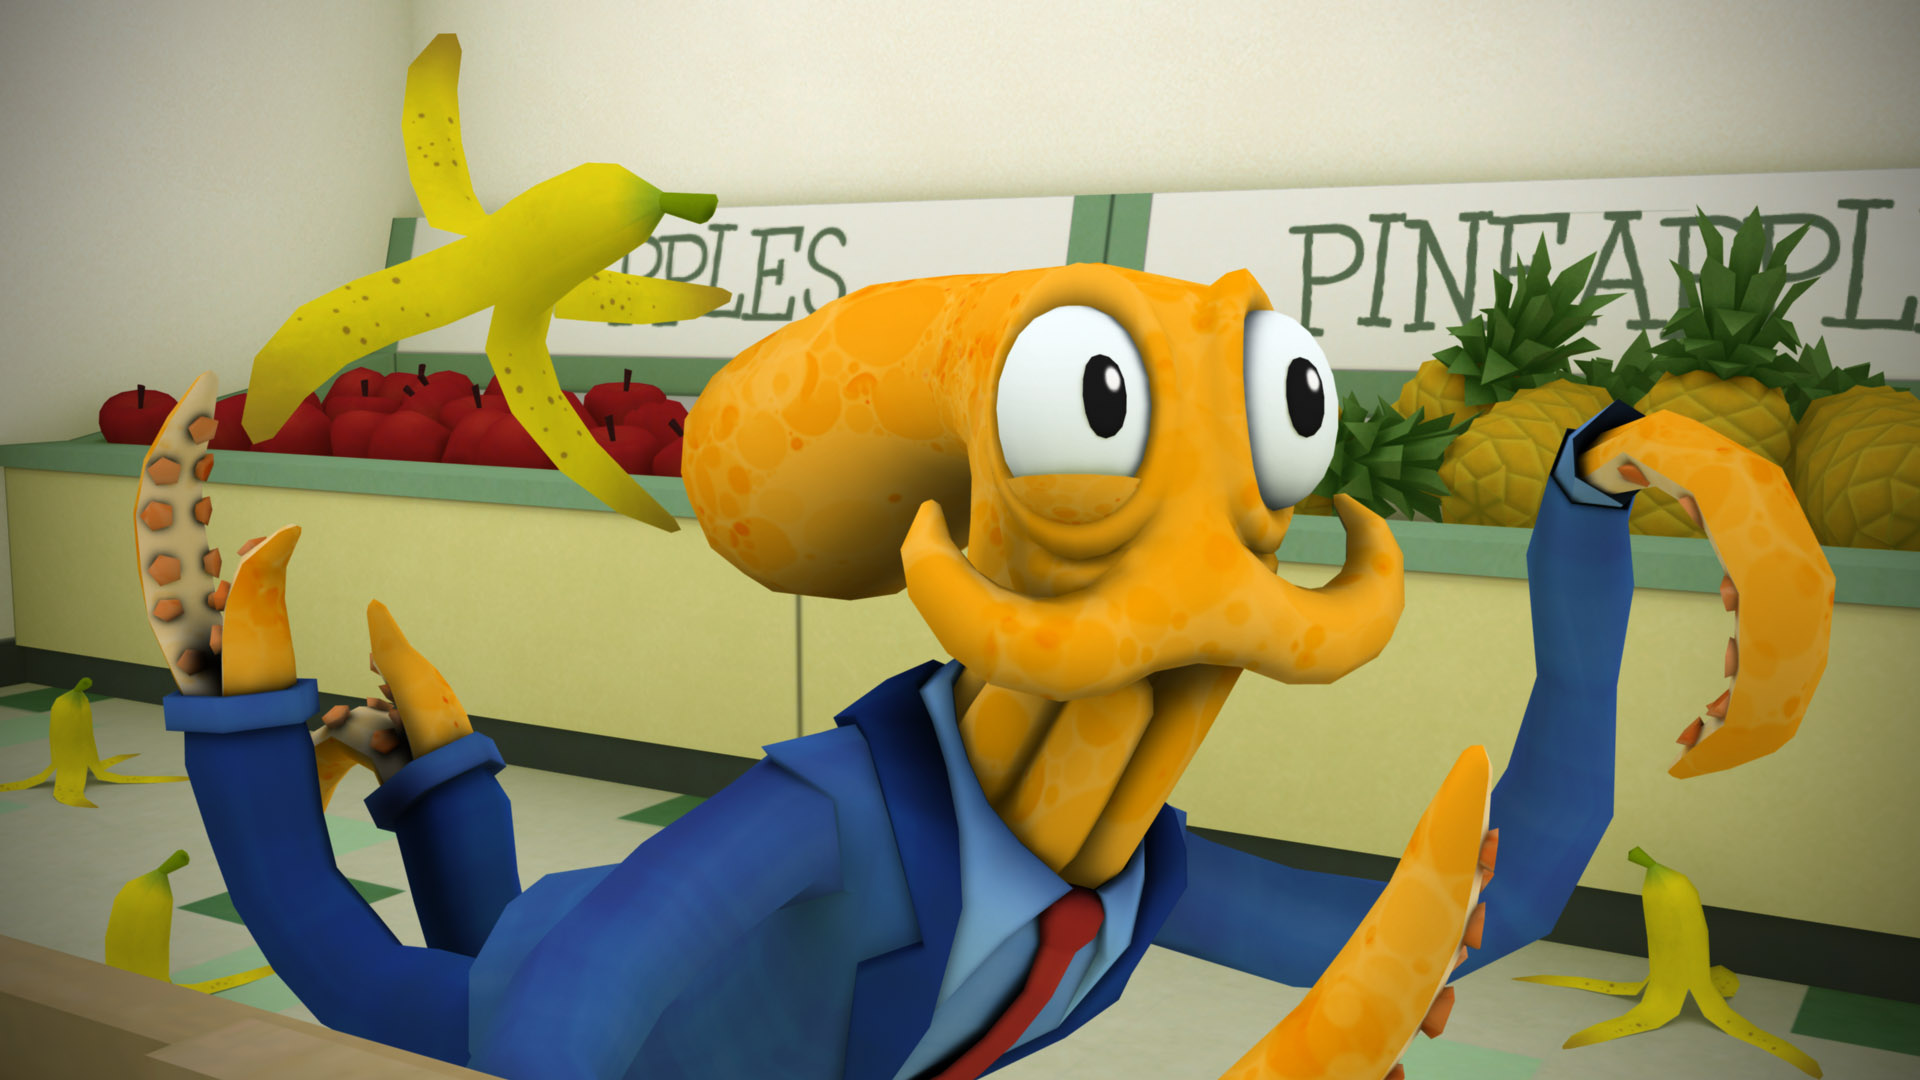 Octodad: Dadliest Catch v1.0.12 Immagini